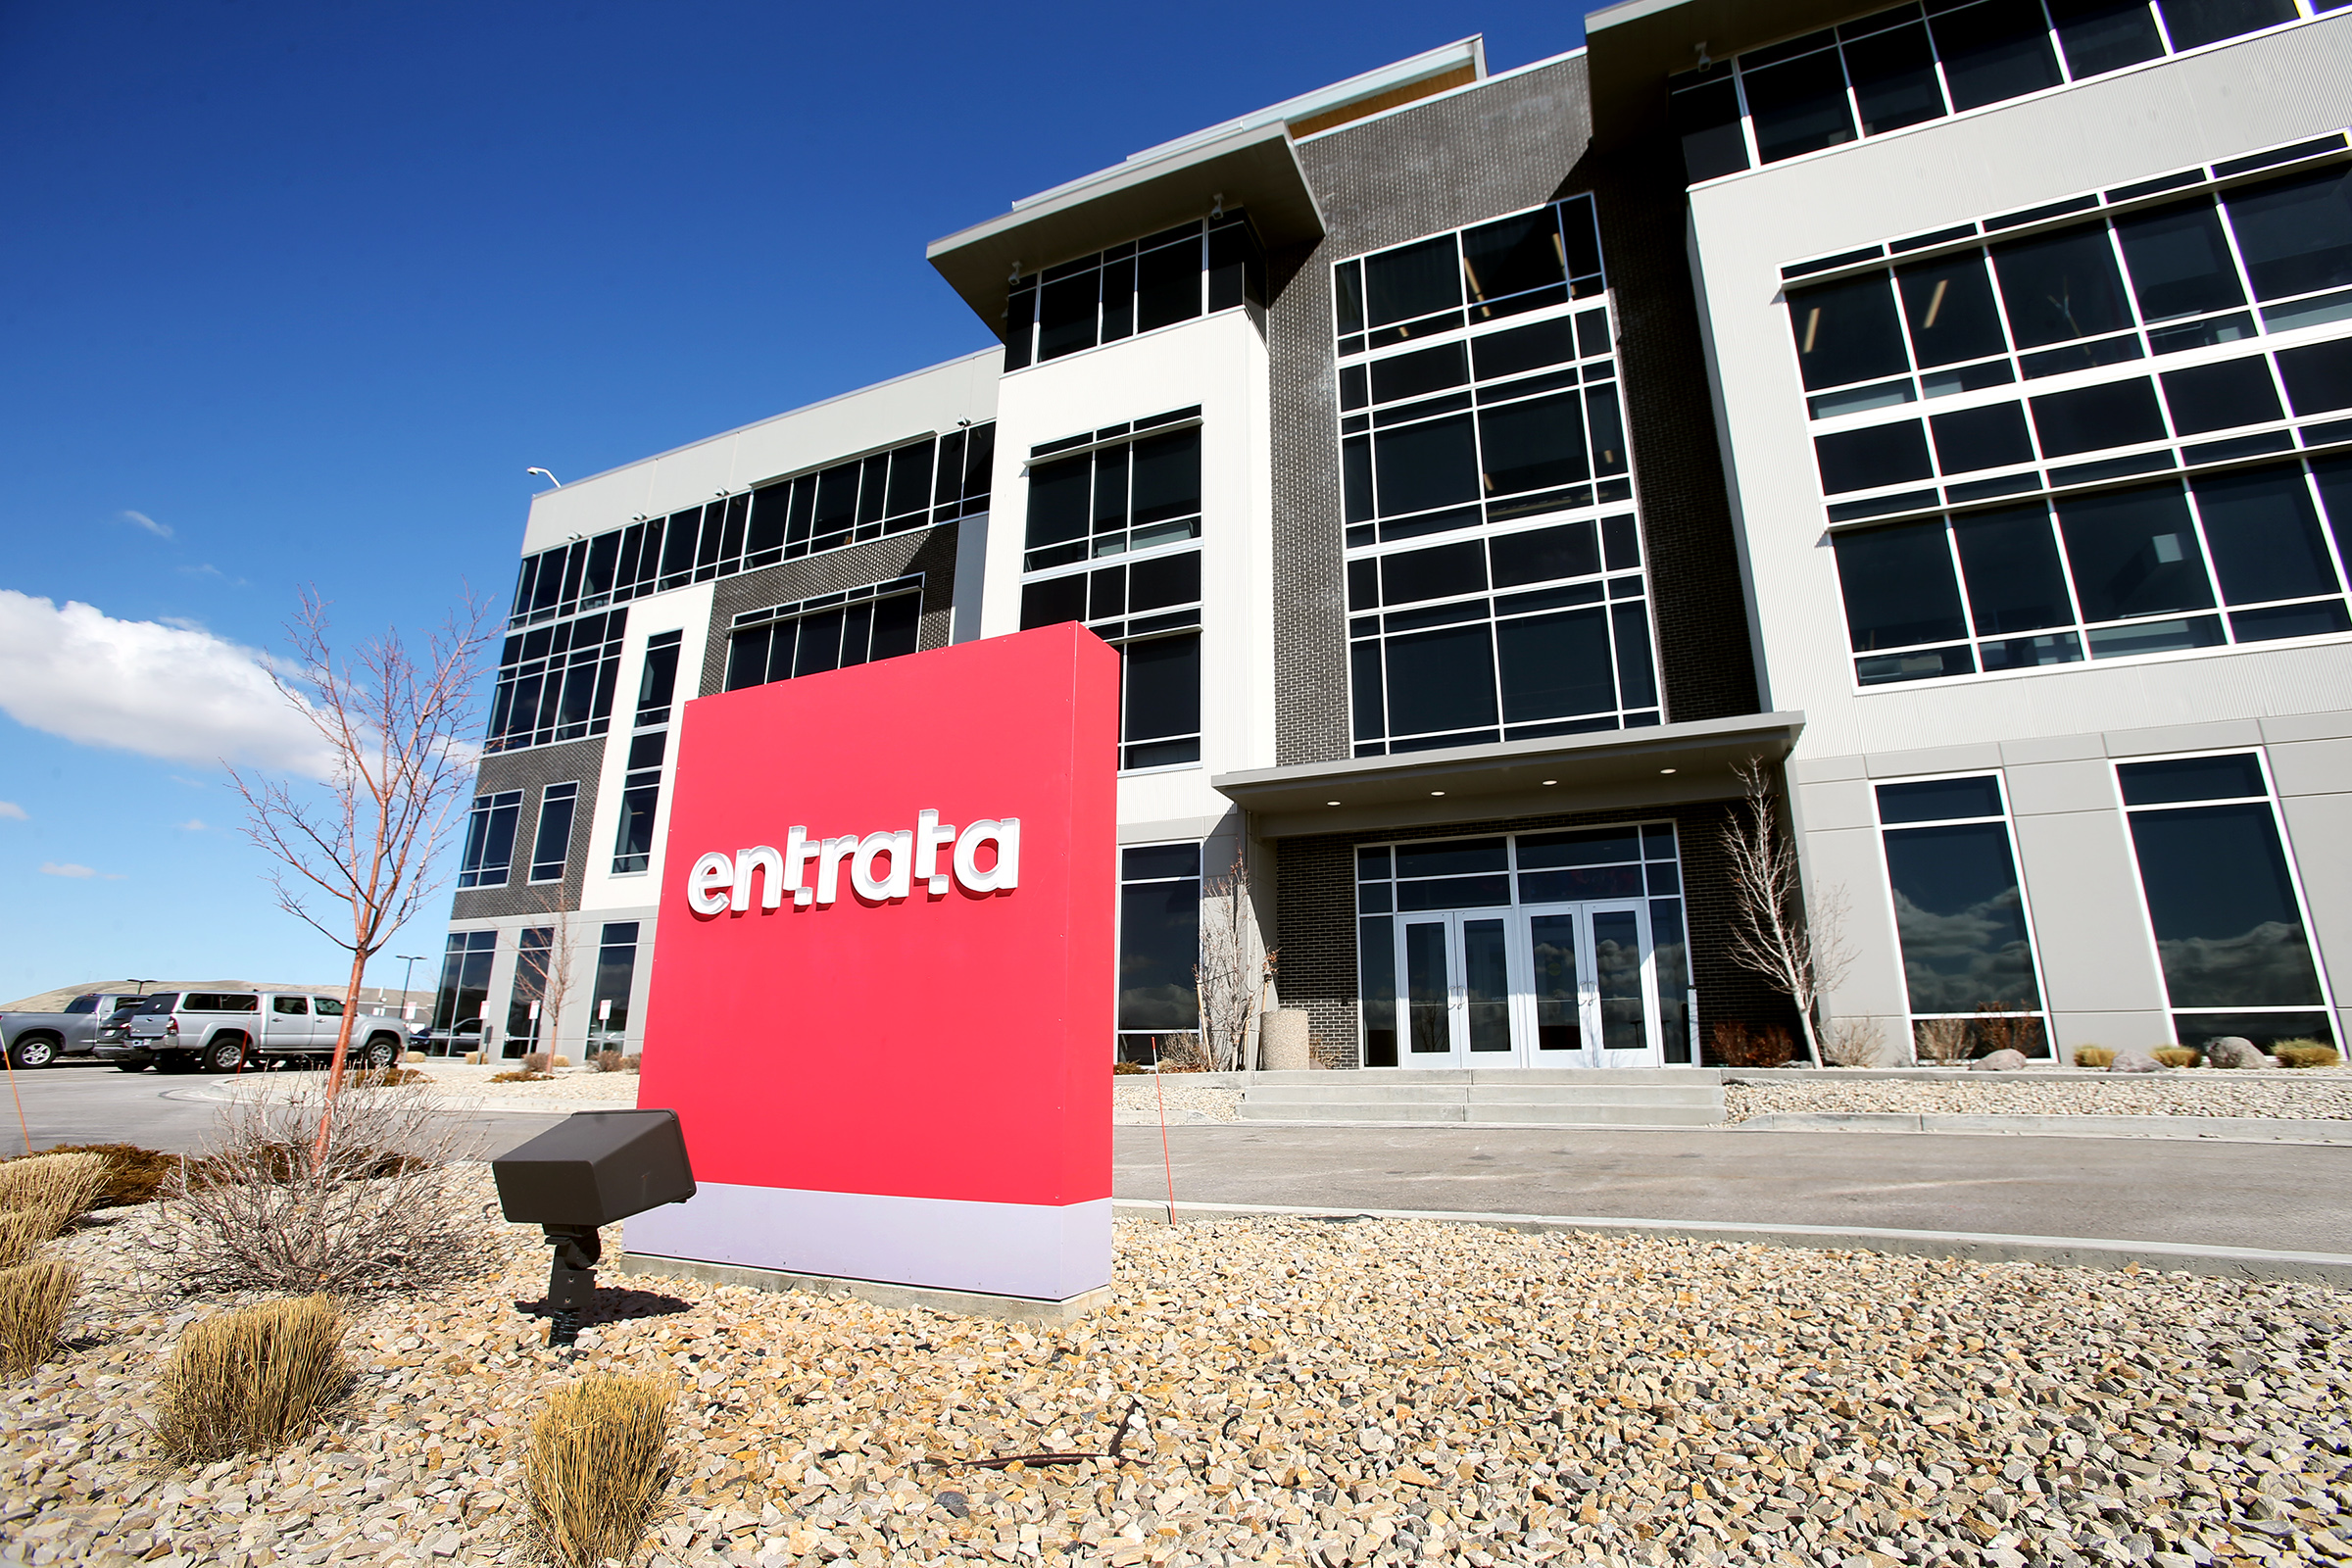 Entrata's offices in Lehi are pictured on Tuesday, Feb. 25, 2020.